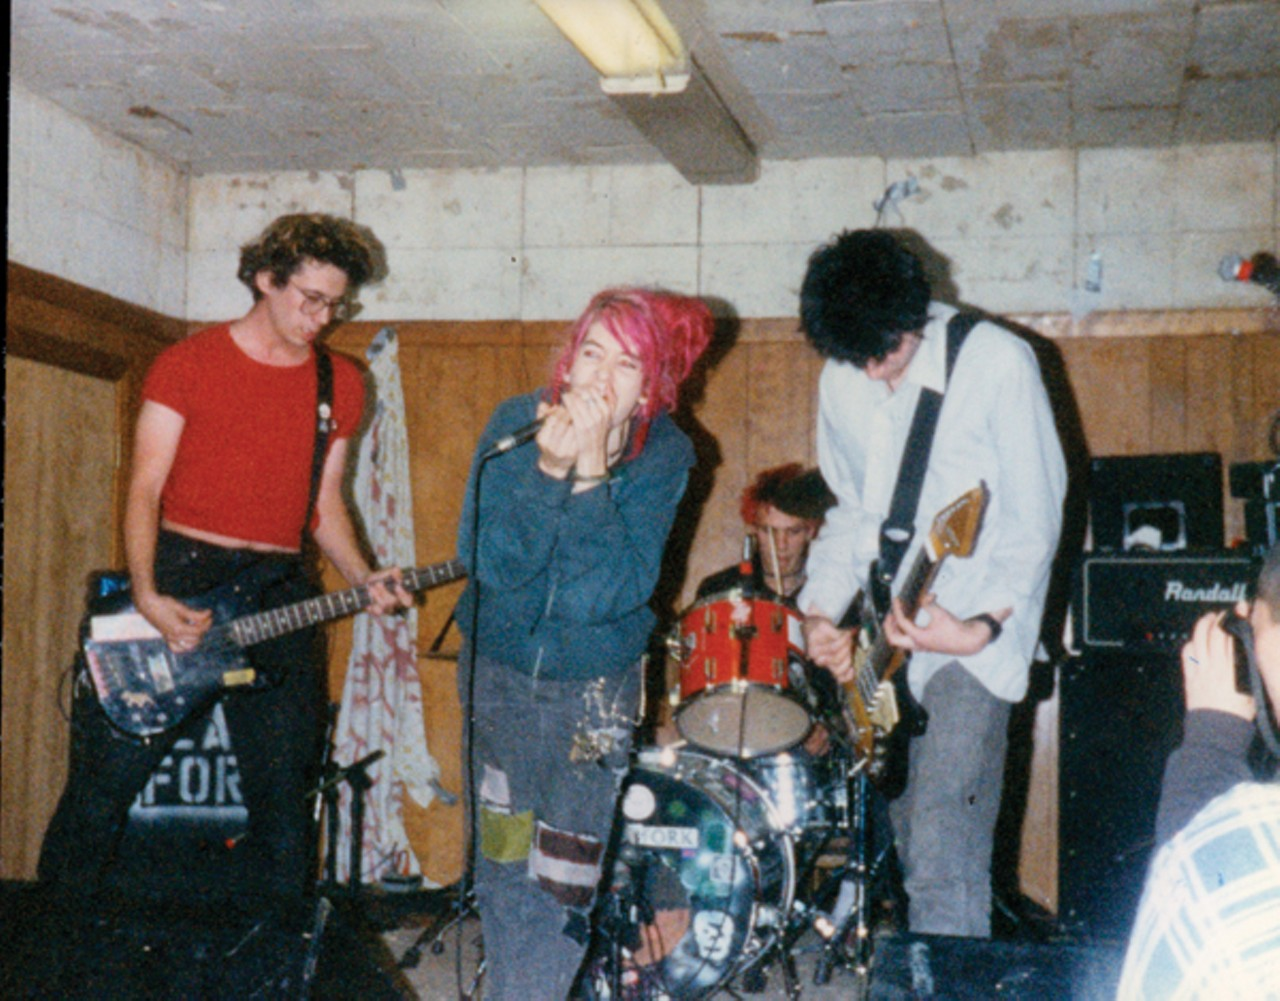 preteen hardcore Black Fork, the 1990s hardcore band and churlish conscience of the East Bay punk scene reunites after twenty years.